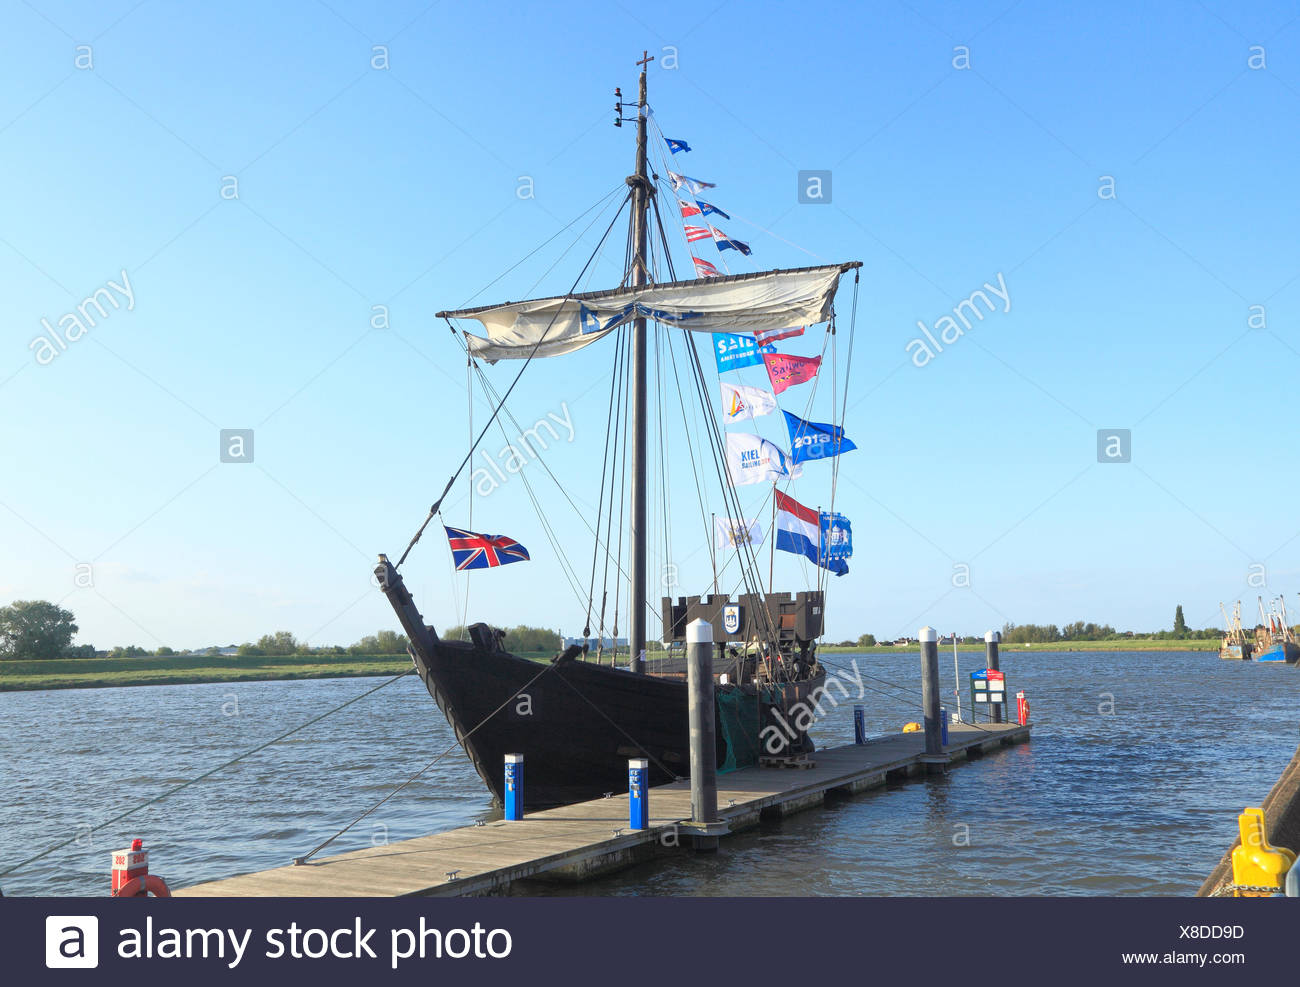 Kamper Kogge, 14th century Hanseatic trading ship, replica, Kings Lynn, Norfolk England UK medieval ships boat boats - Stock Image